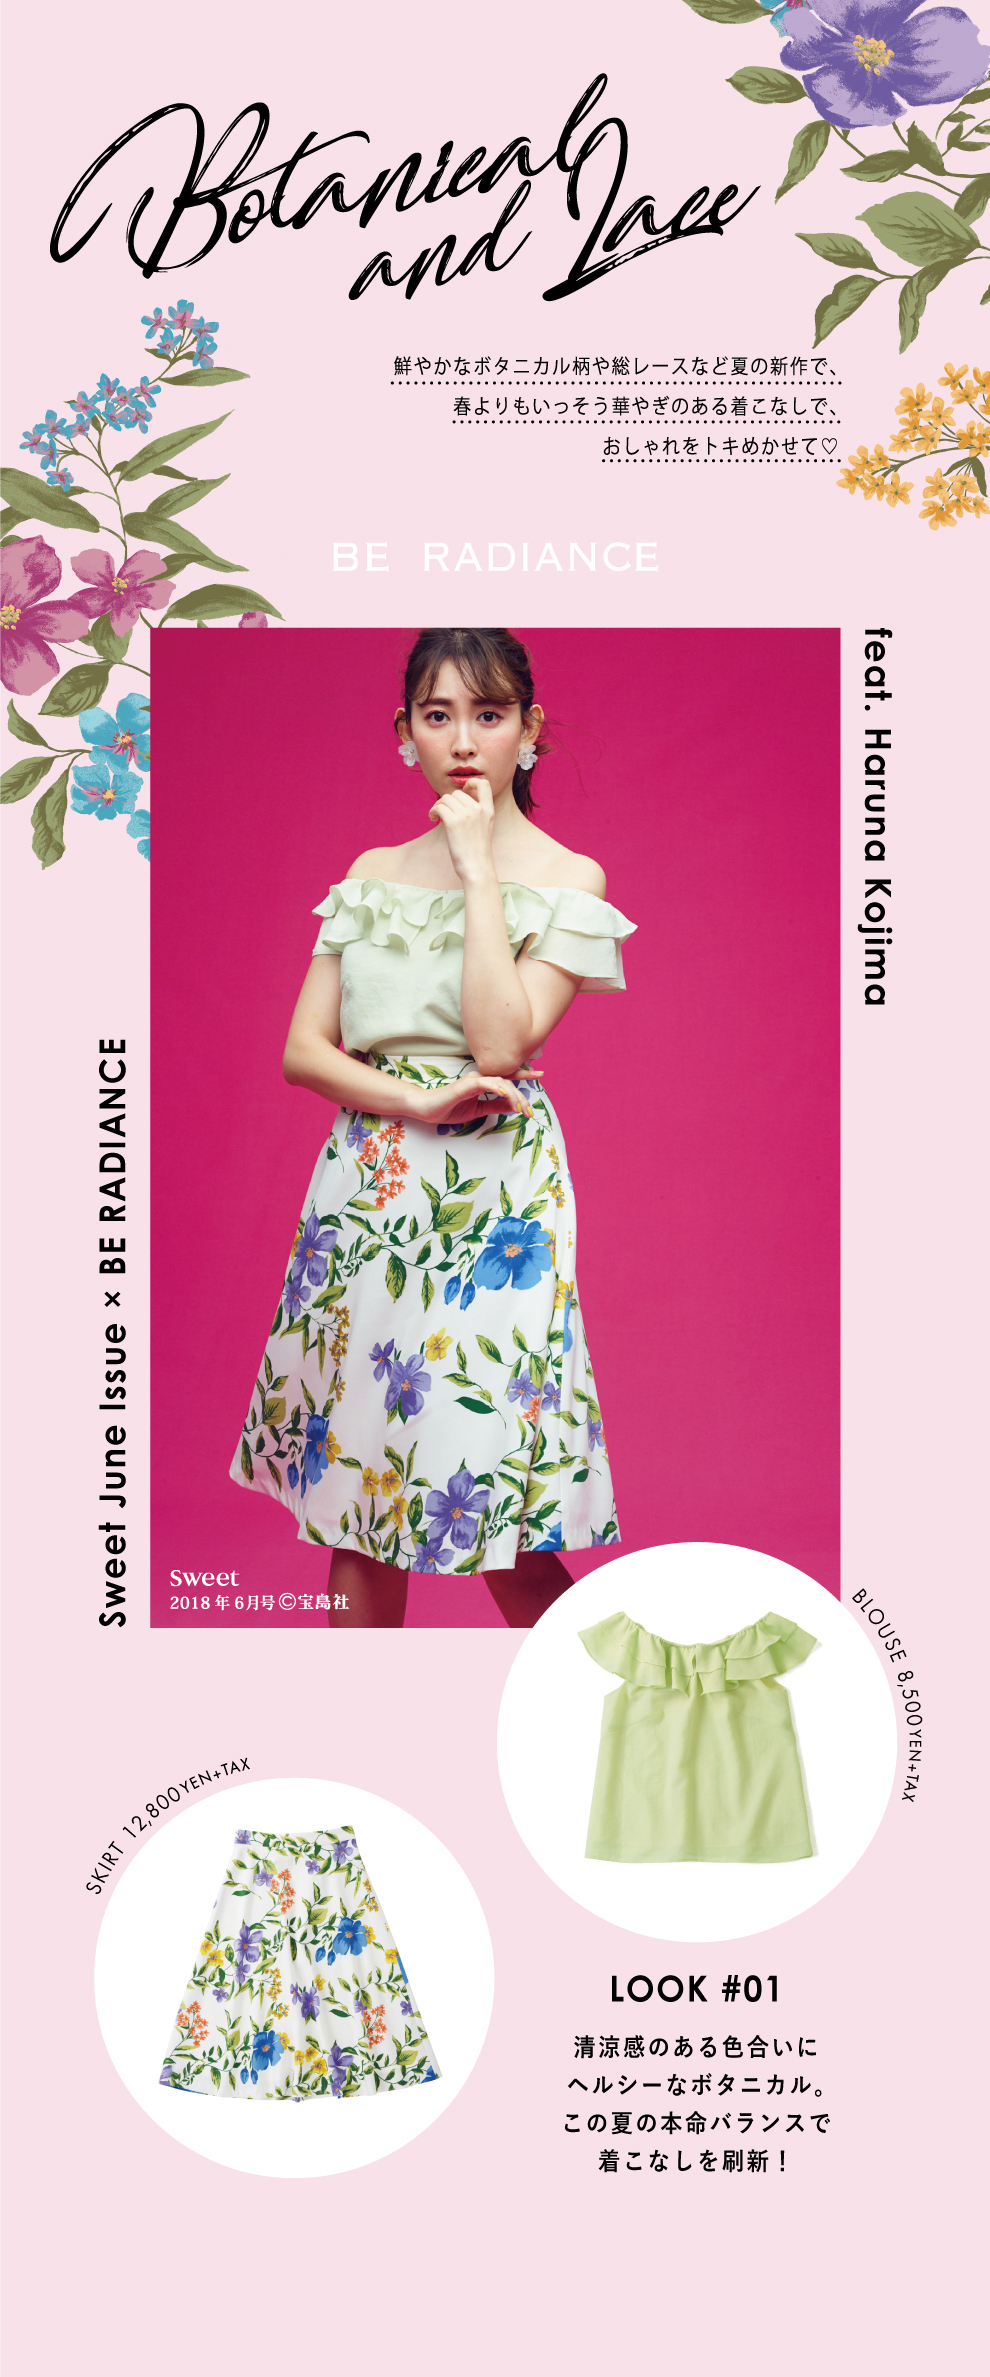 Sweet June Issue × BE RADIANCE Botanical and Lace